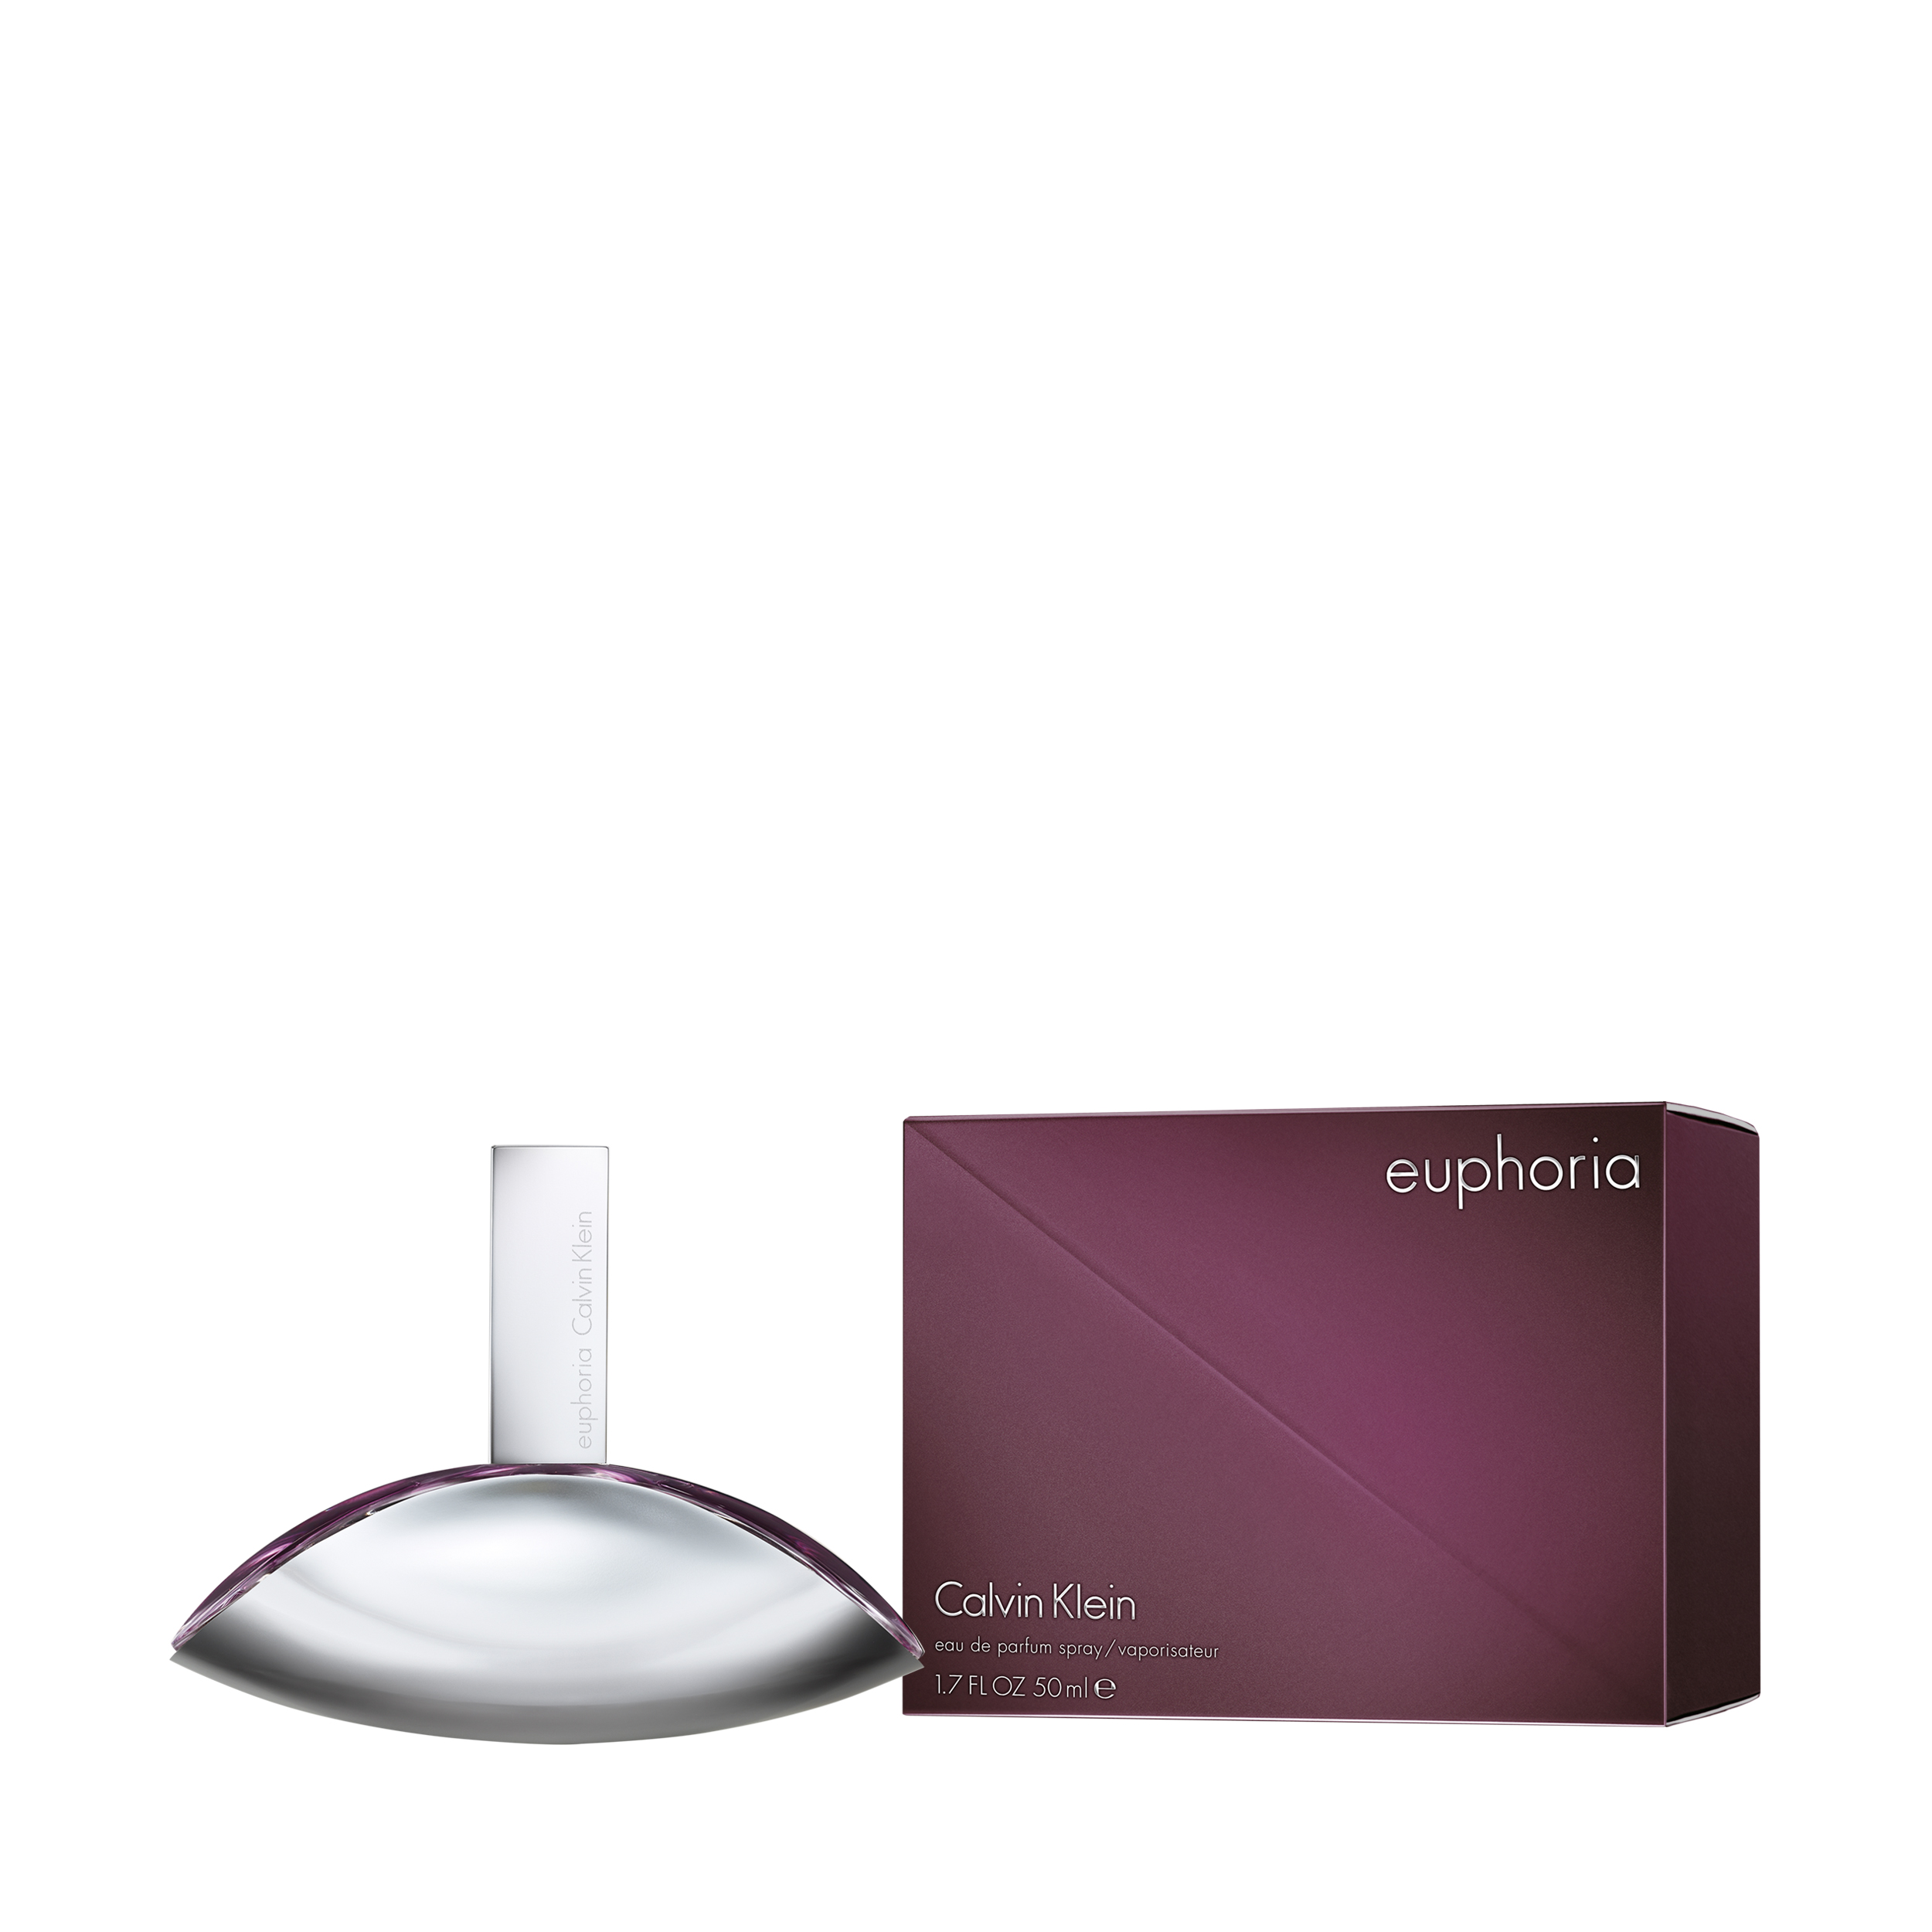 CK EUPHORIA WOMAN EDP 50ML